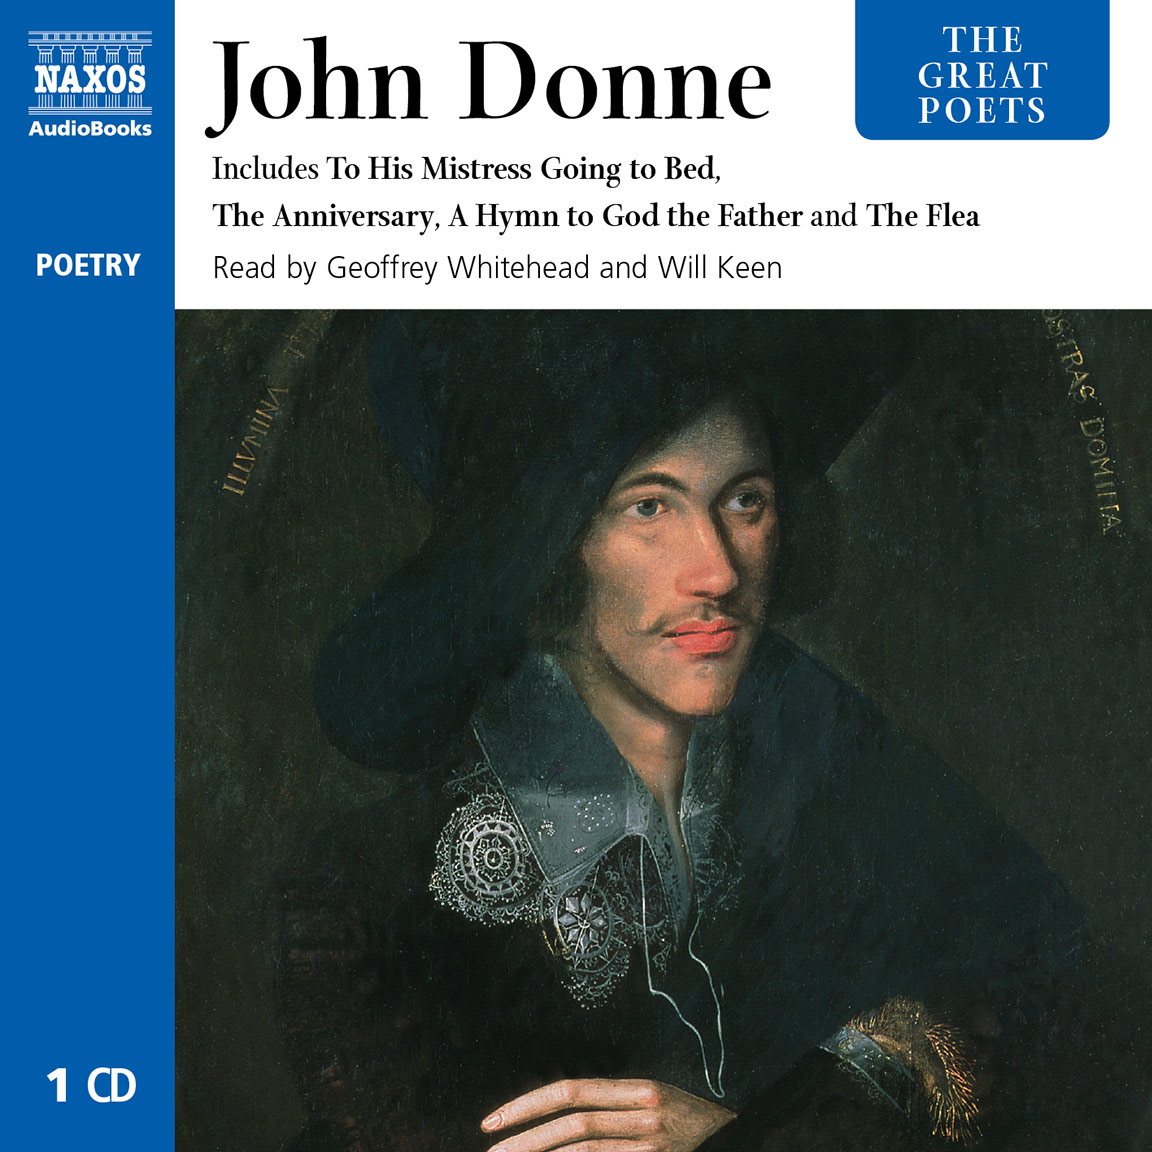 Thomas Carew elegy on donne analysis